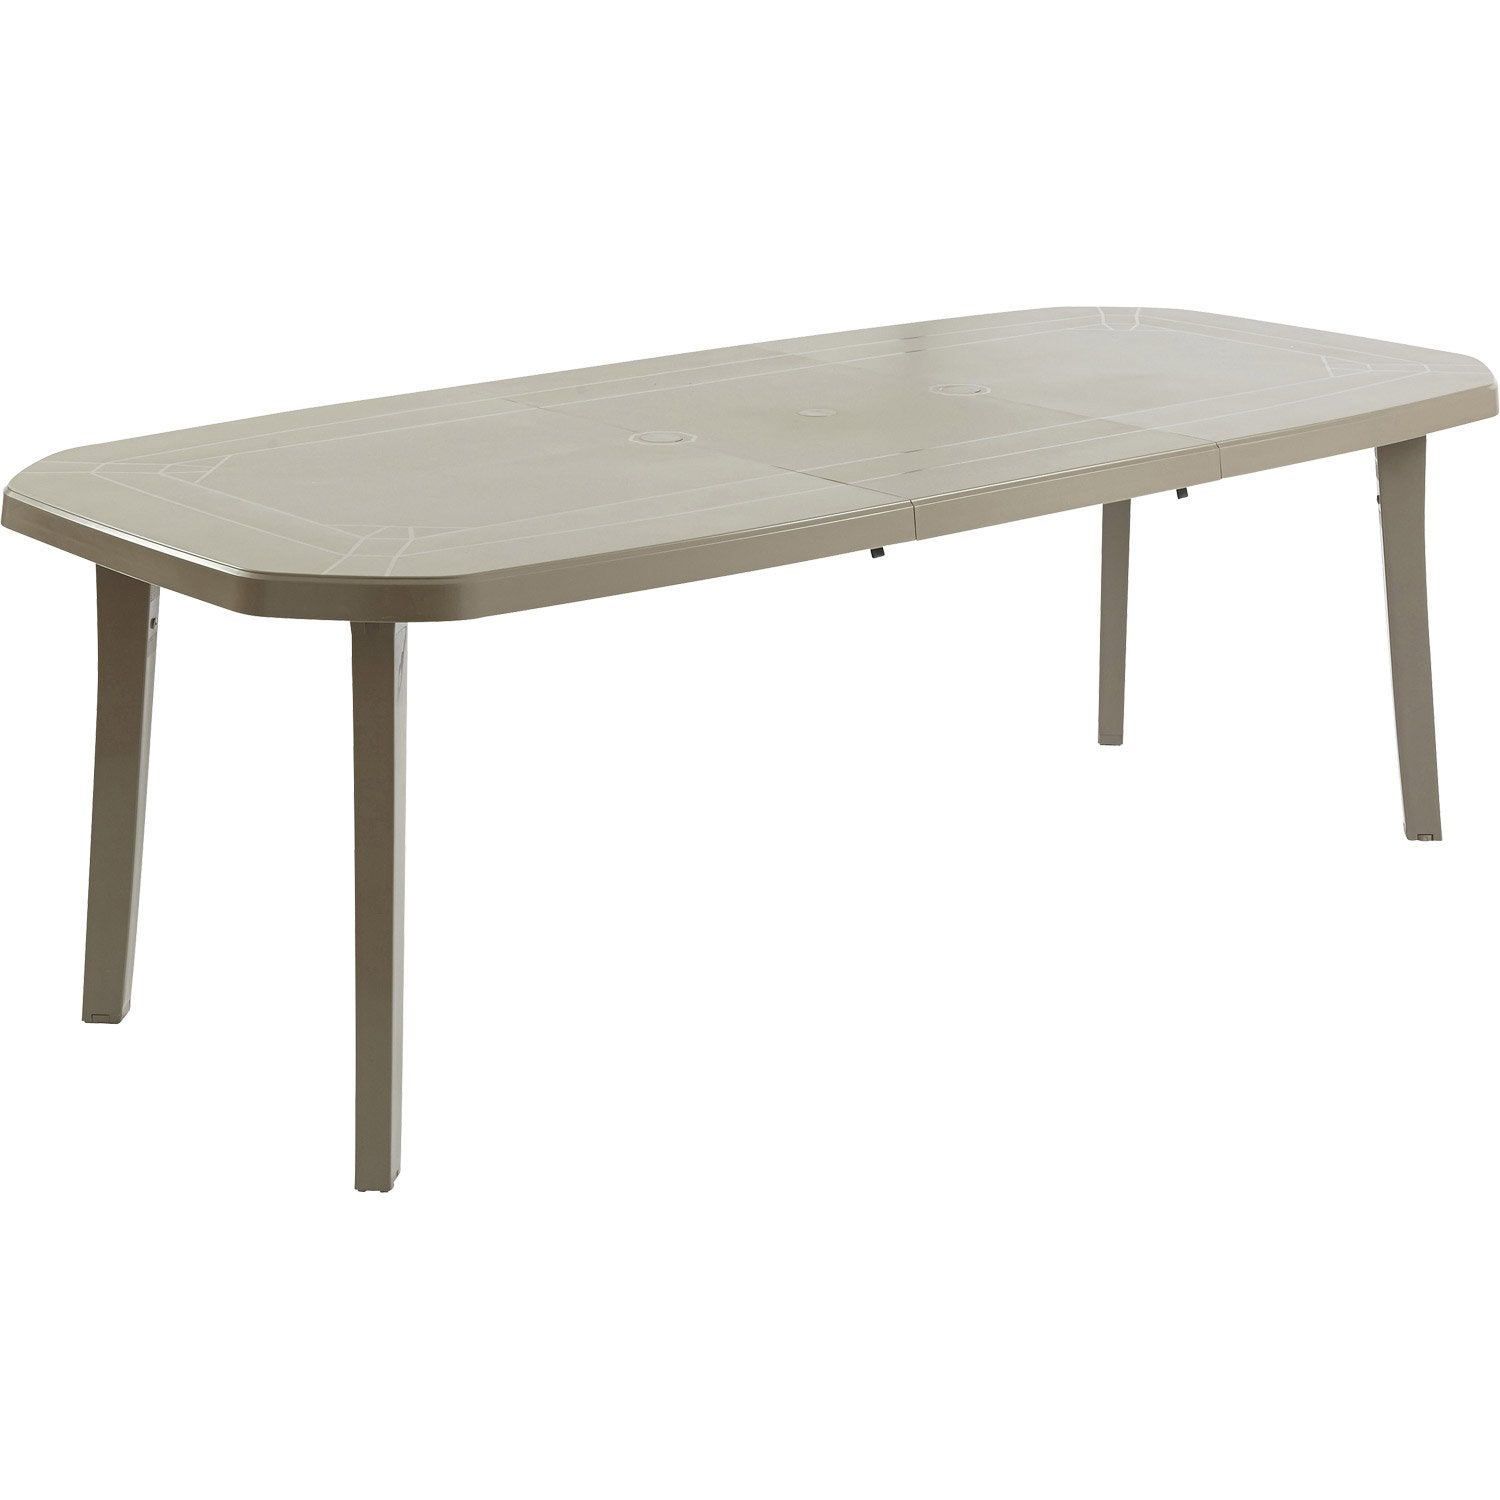 Stunning grande table de jardin grosfillex photos design for Tables de jardins